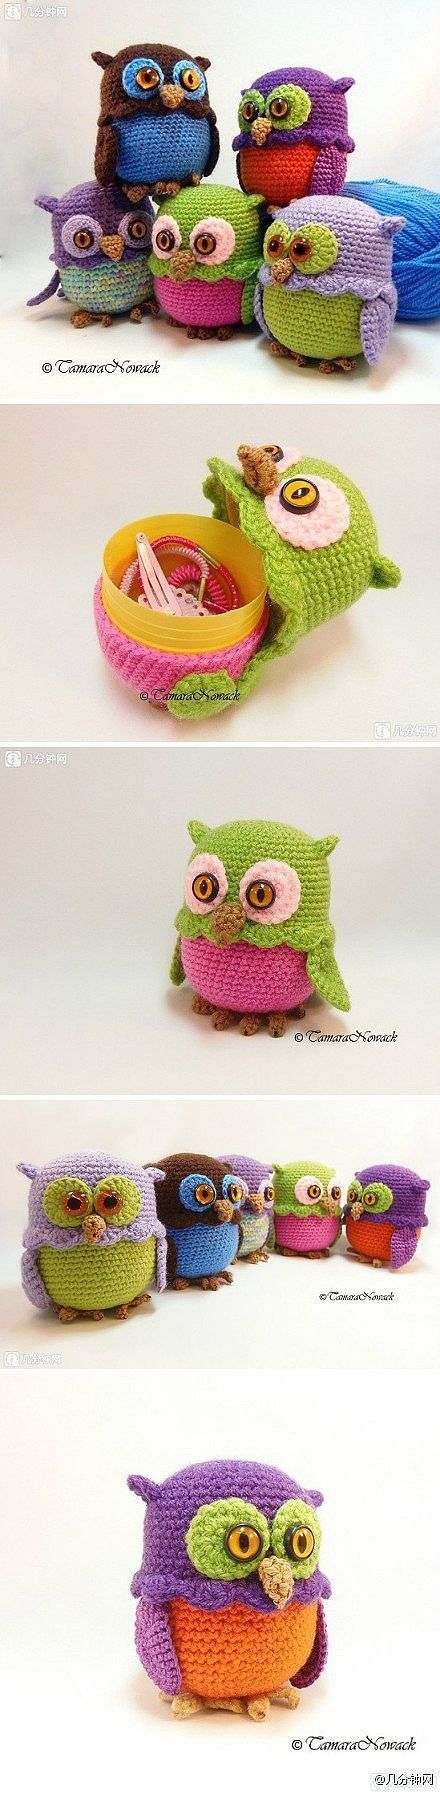 237 best BB Osito images on Pinterest | Crochet patterns, Crocheting ...